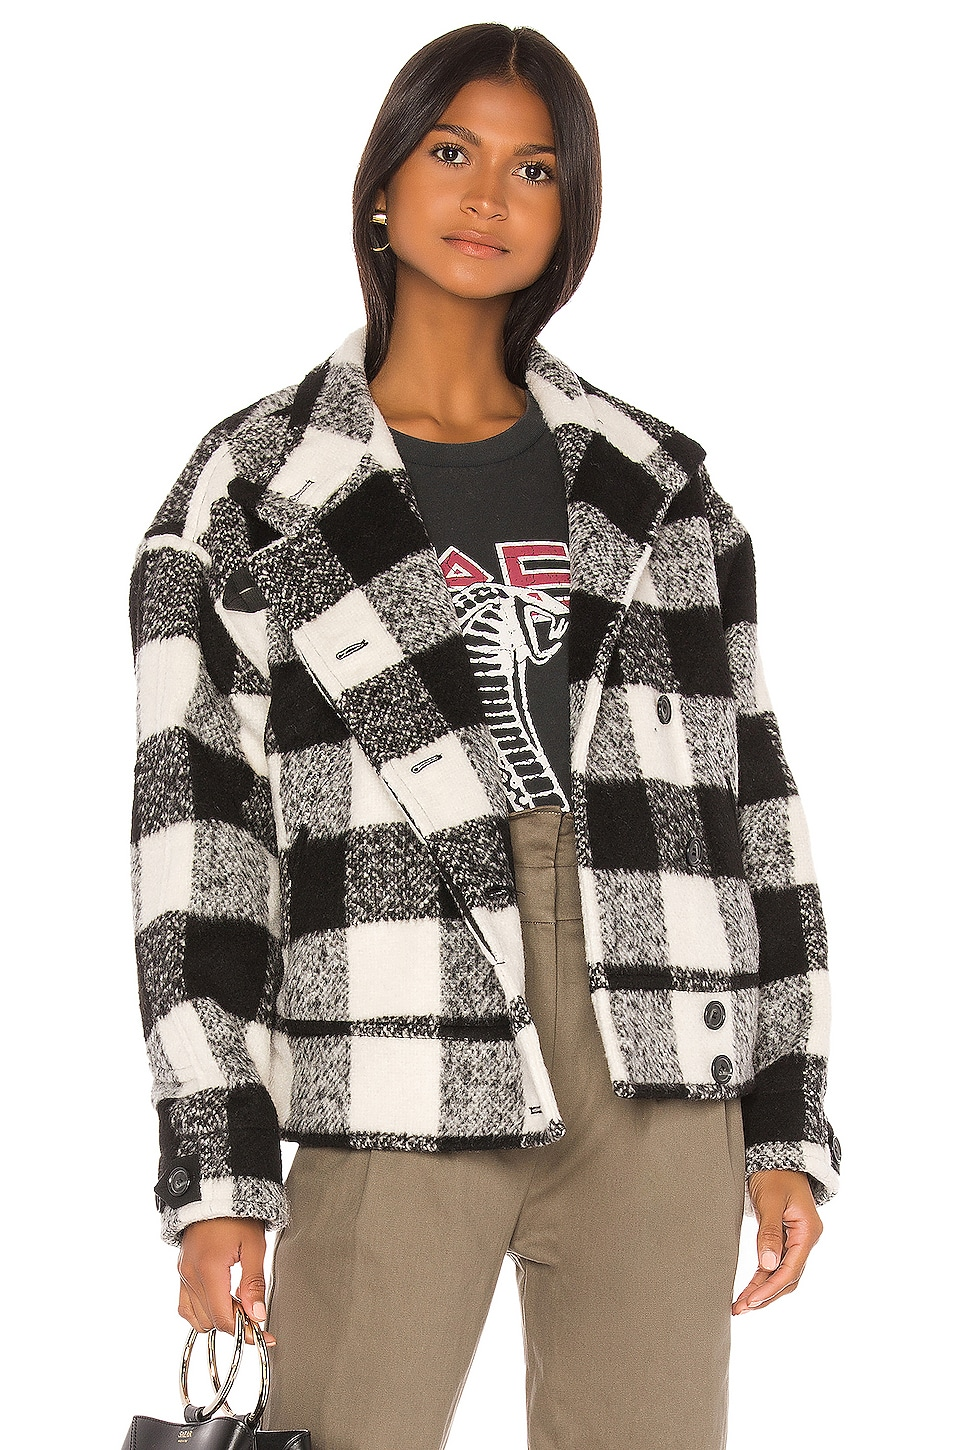 Rebecca Minkoff Allegra Jacket in Black Multi